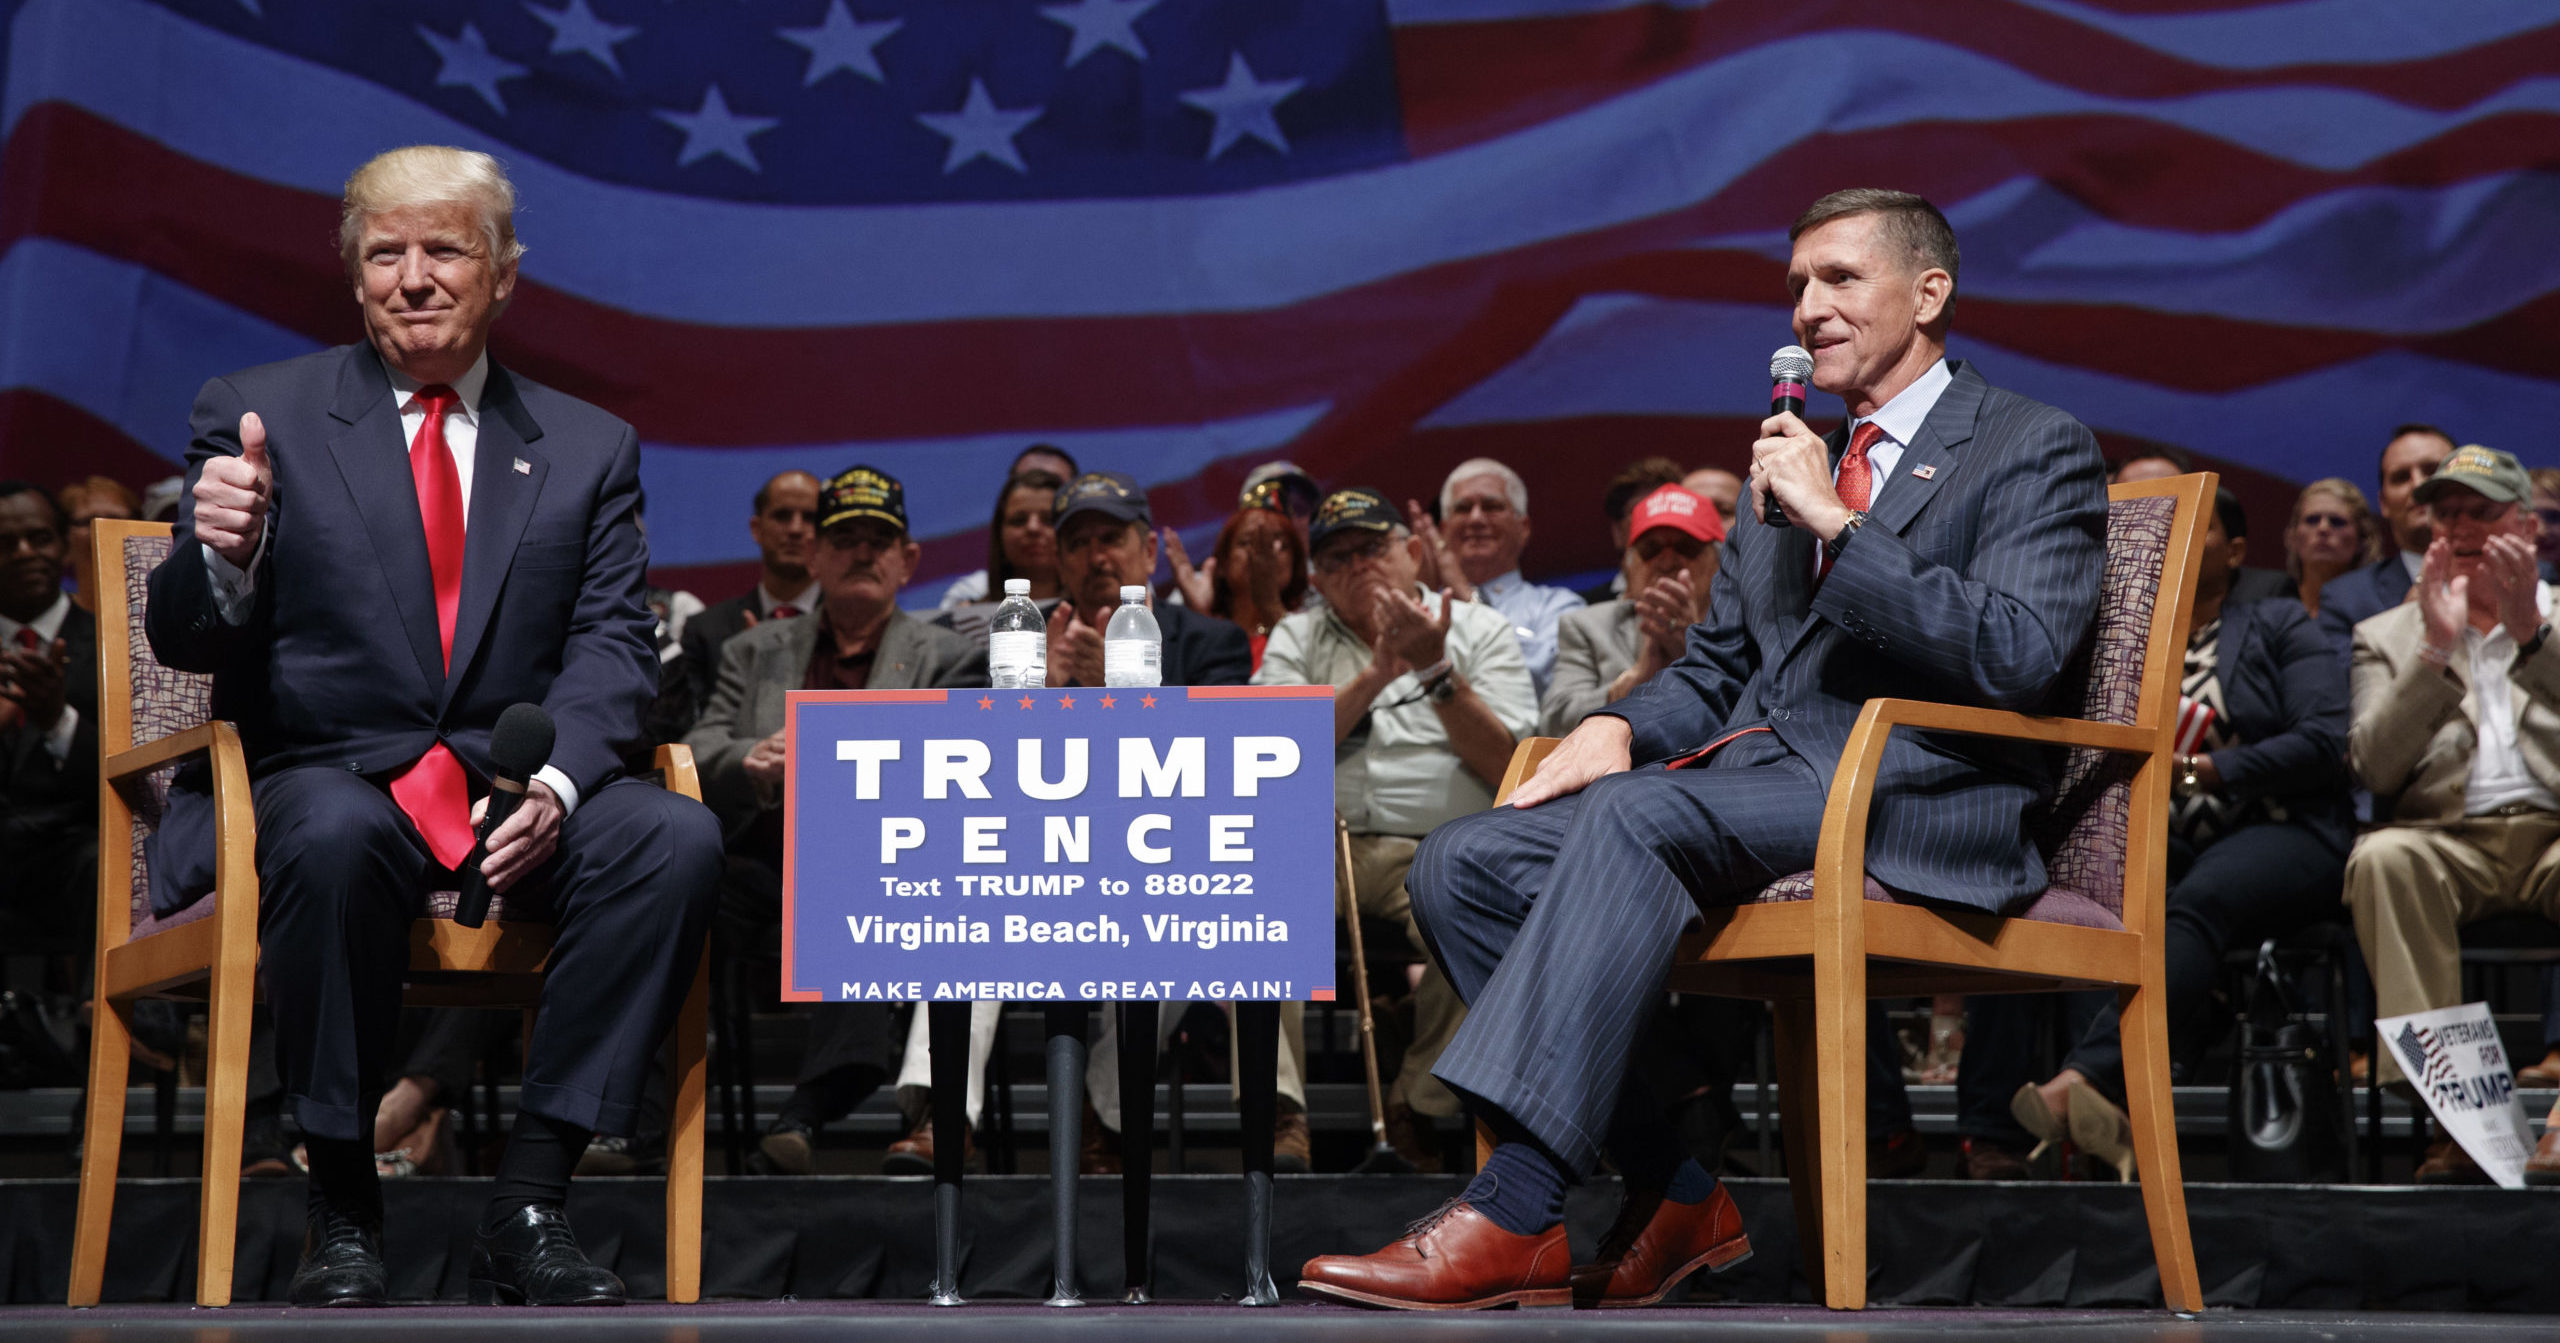 Then-presidential candidate Donald Trump gives a thumbs-up as he speaks with retired Lt. Gen. Michael Flynn on Sept. 6, 2016, in Virginia Beach, Virginia.